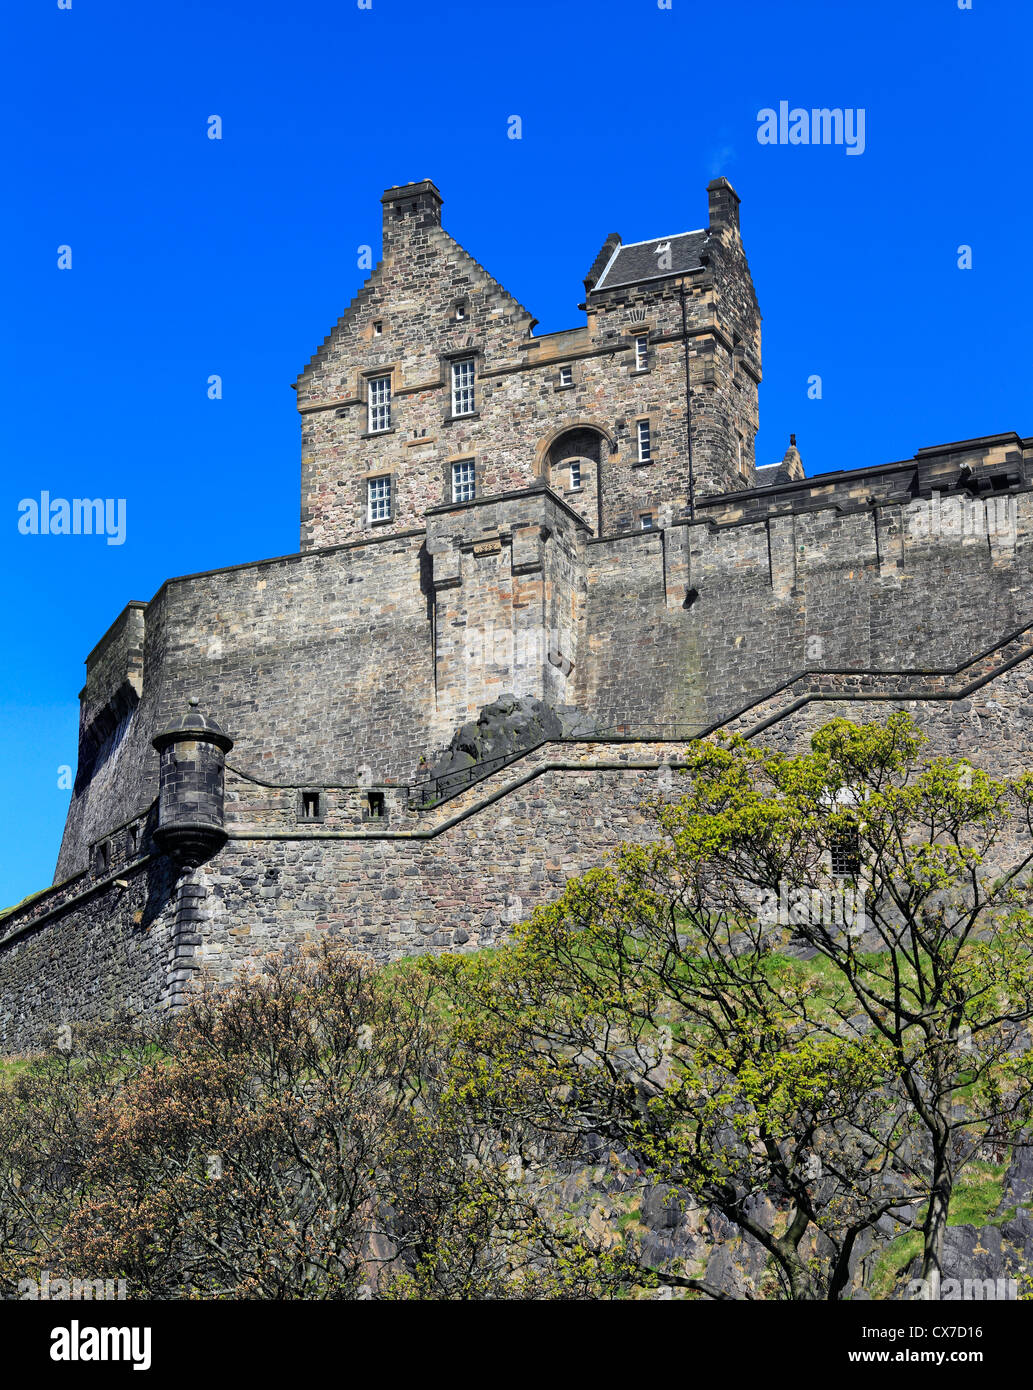 stock edinburgh castle - photo #12